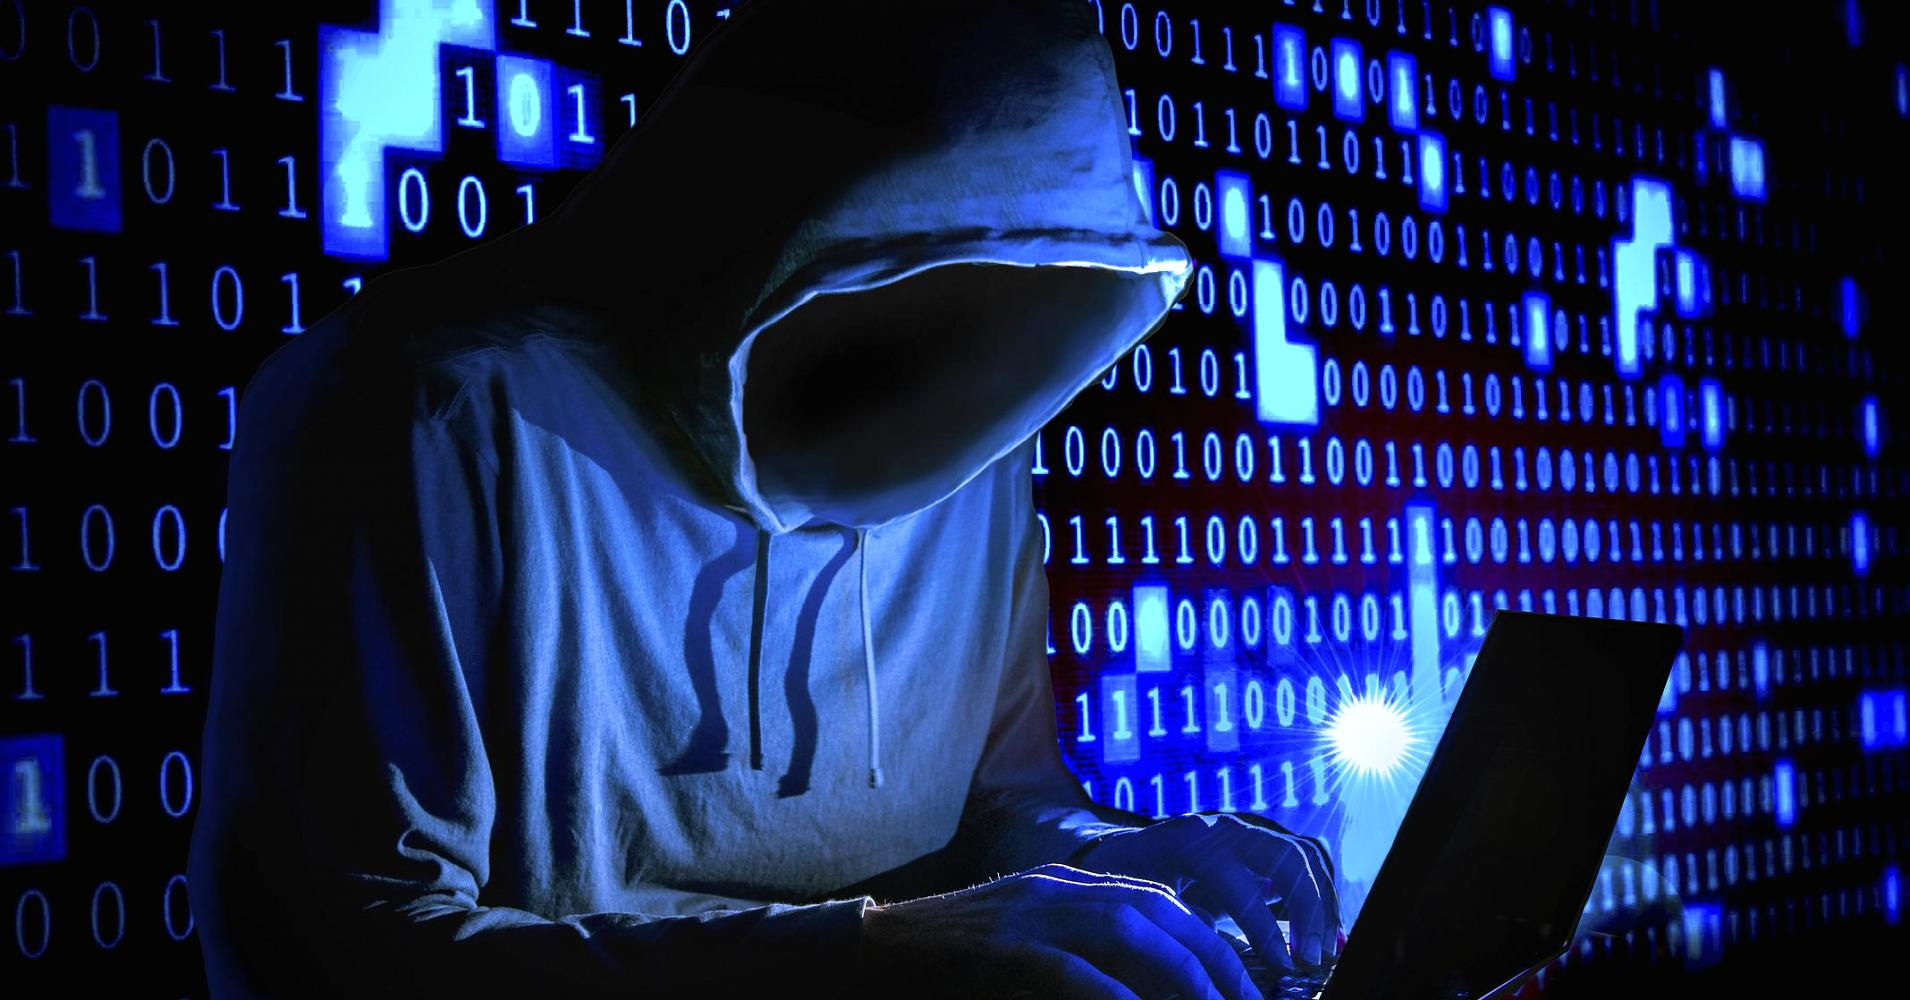 Hackers, Virus, piratas informaticos